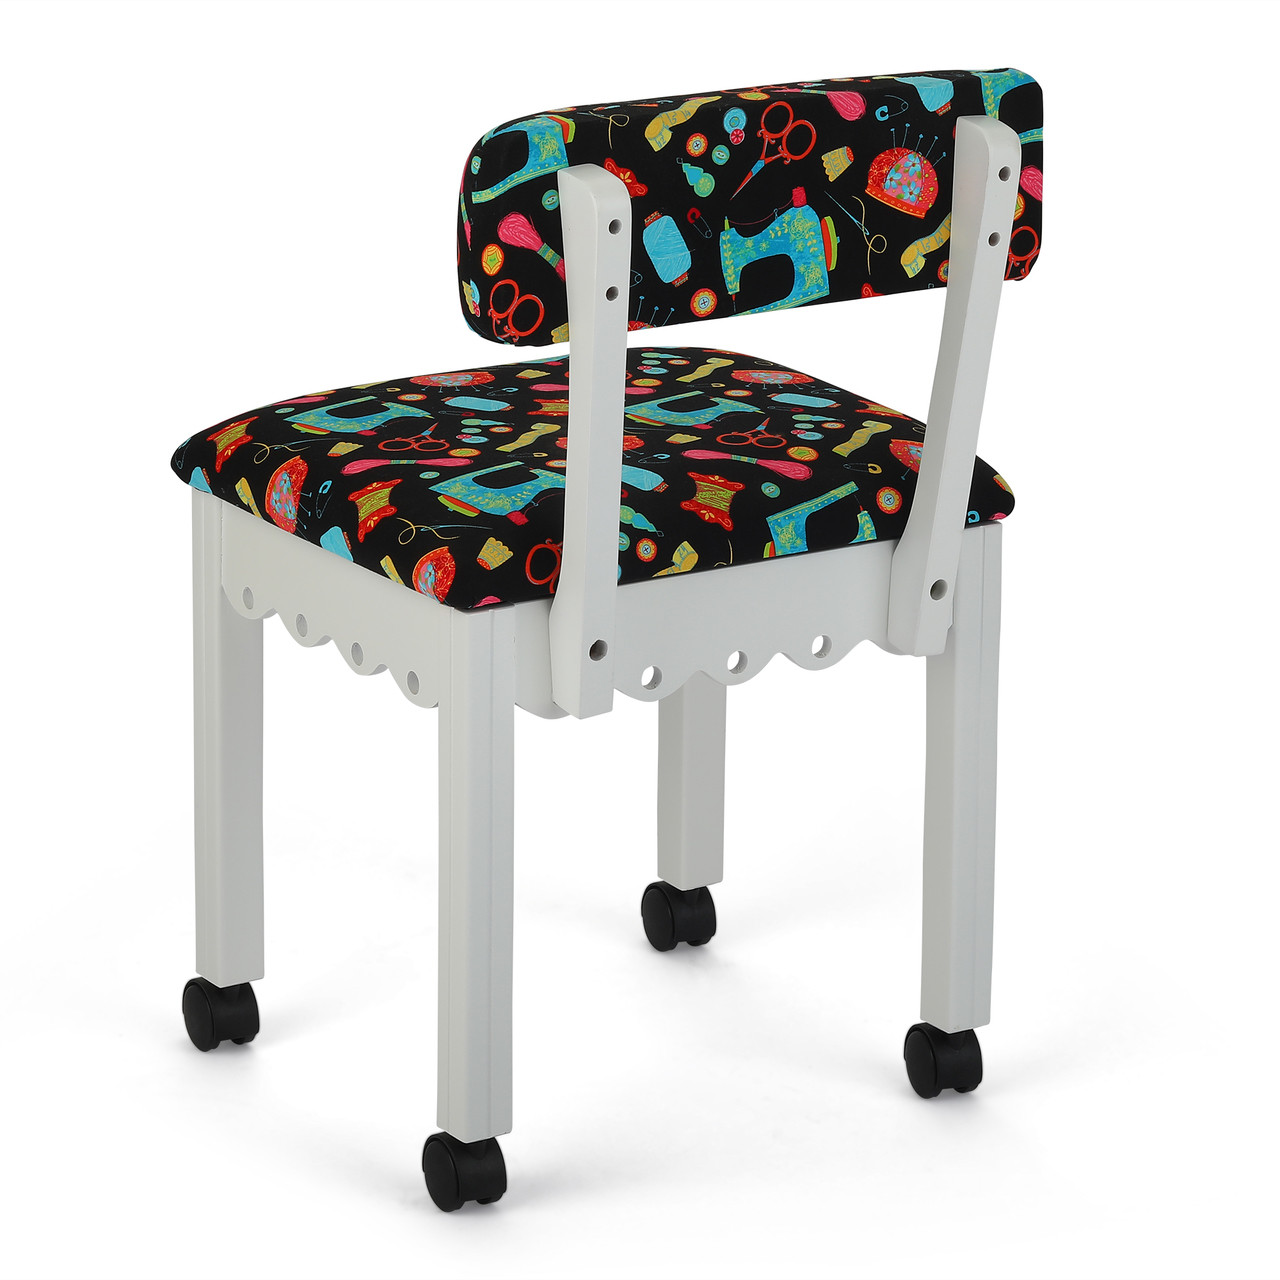 Groovy Arrow 7011B Chair In White And Riley Blake Black Upholstery Theyellowbook Wood Chair Design Ideas Theyellowbookinfo